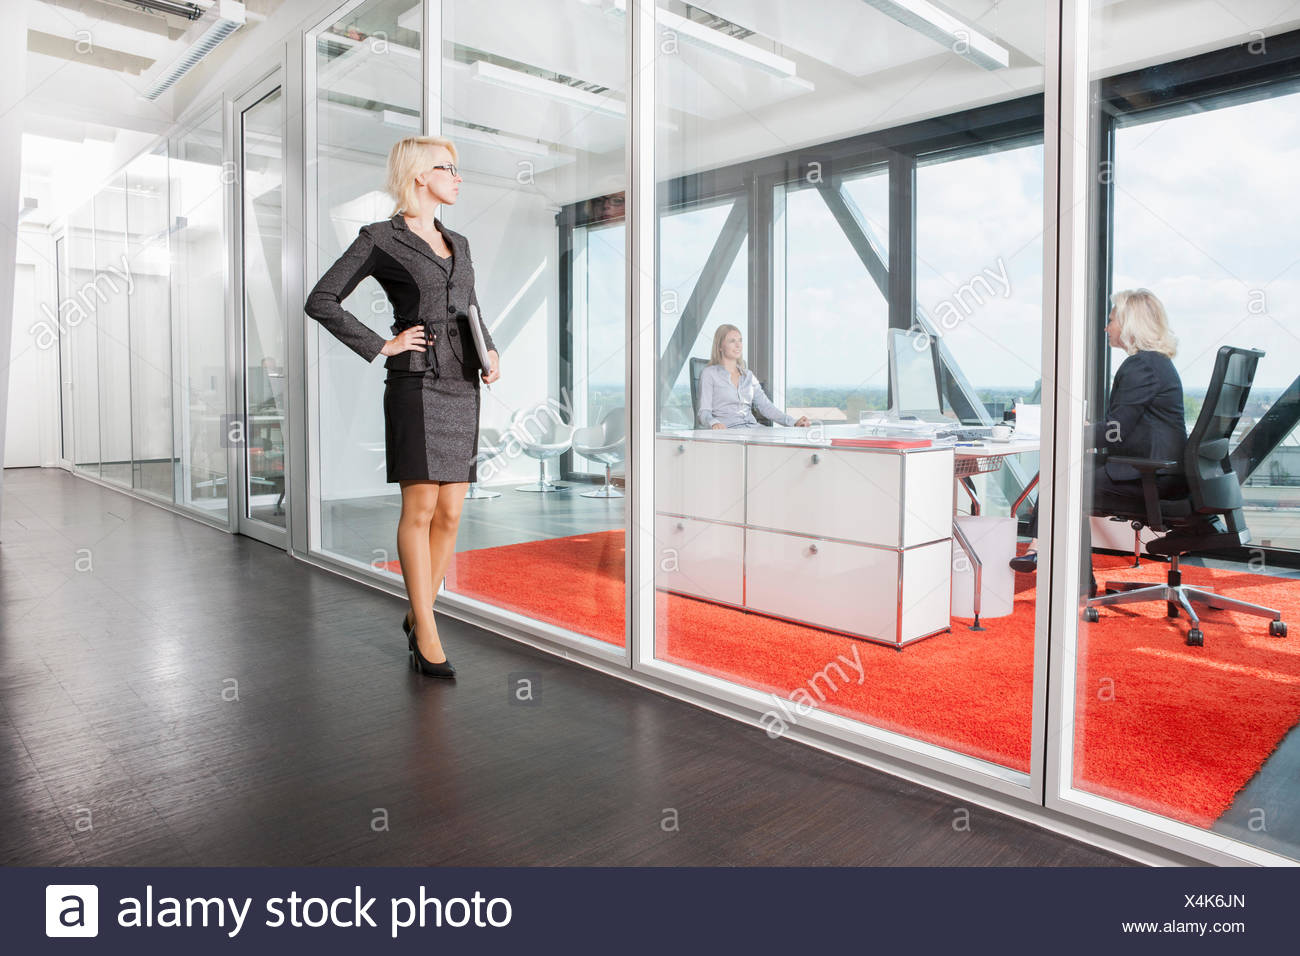 Mid adult woman standing outside interview room - Stock Image